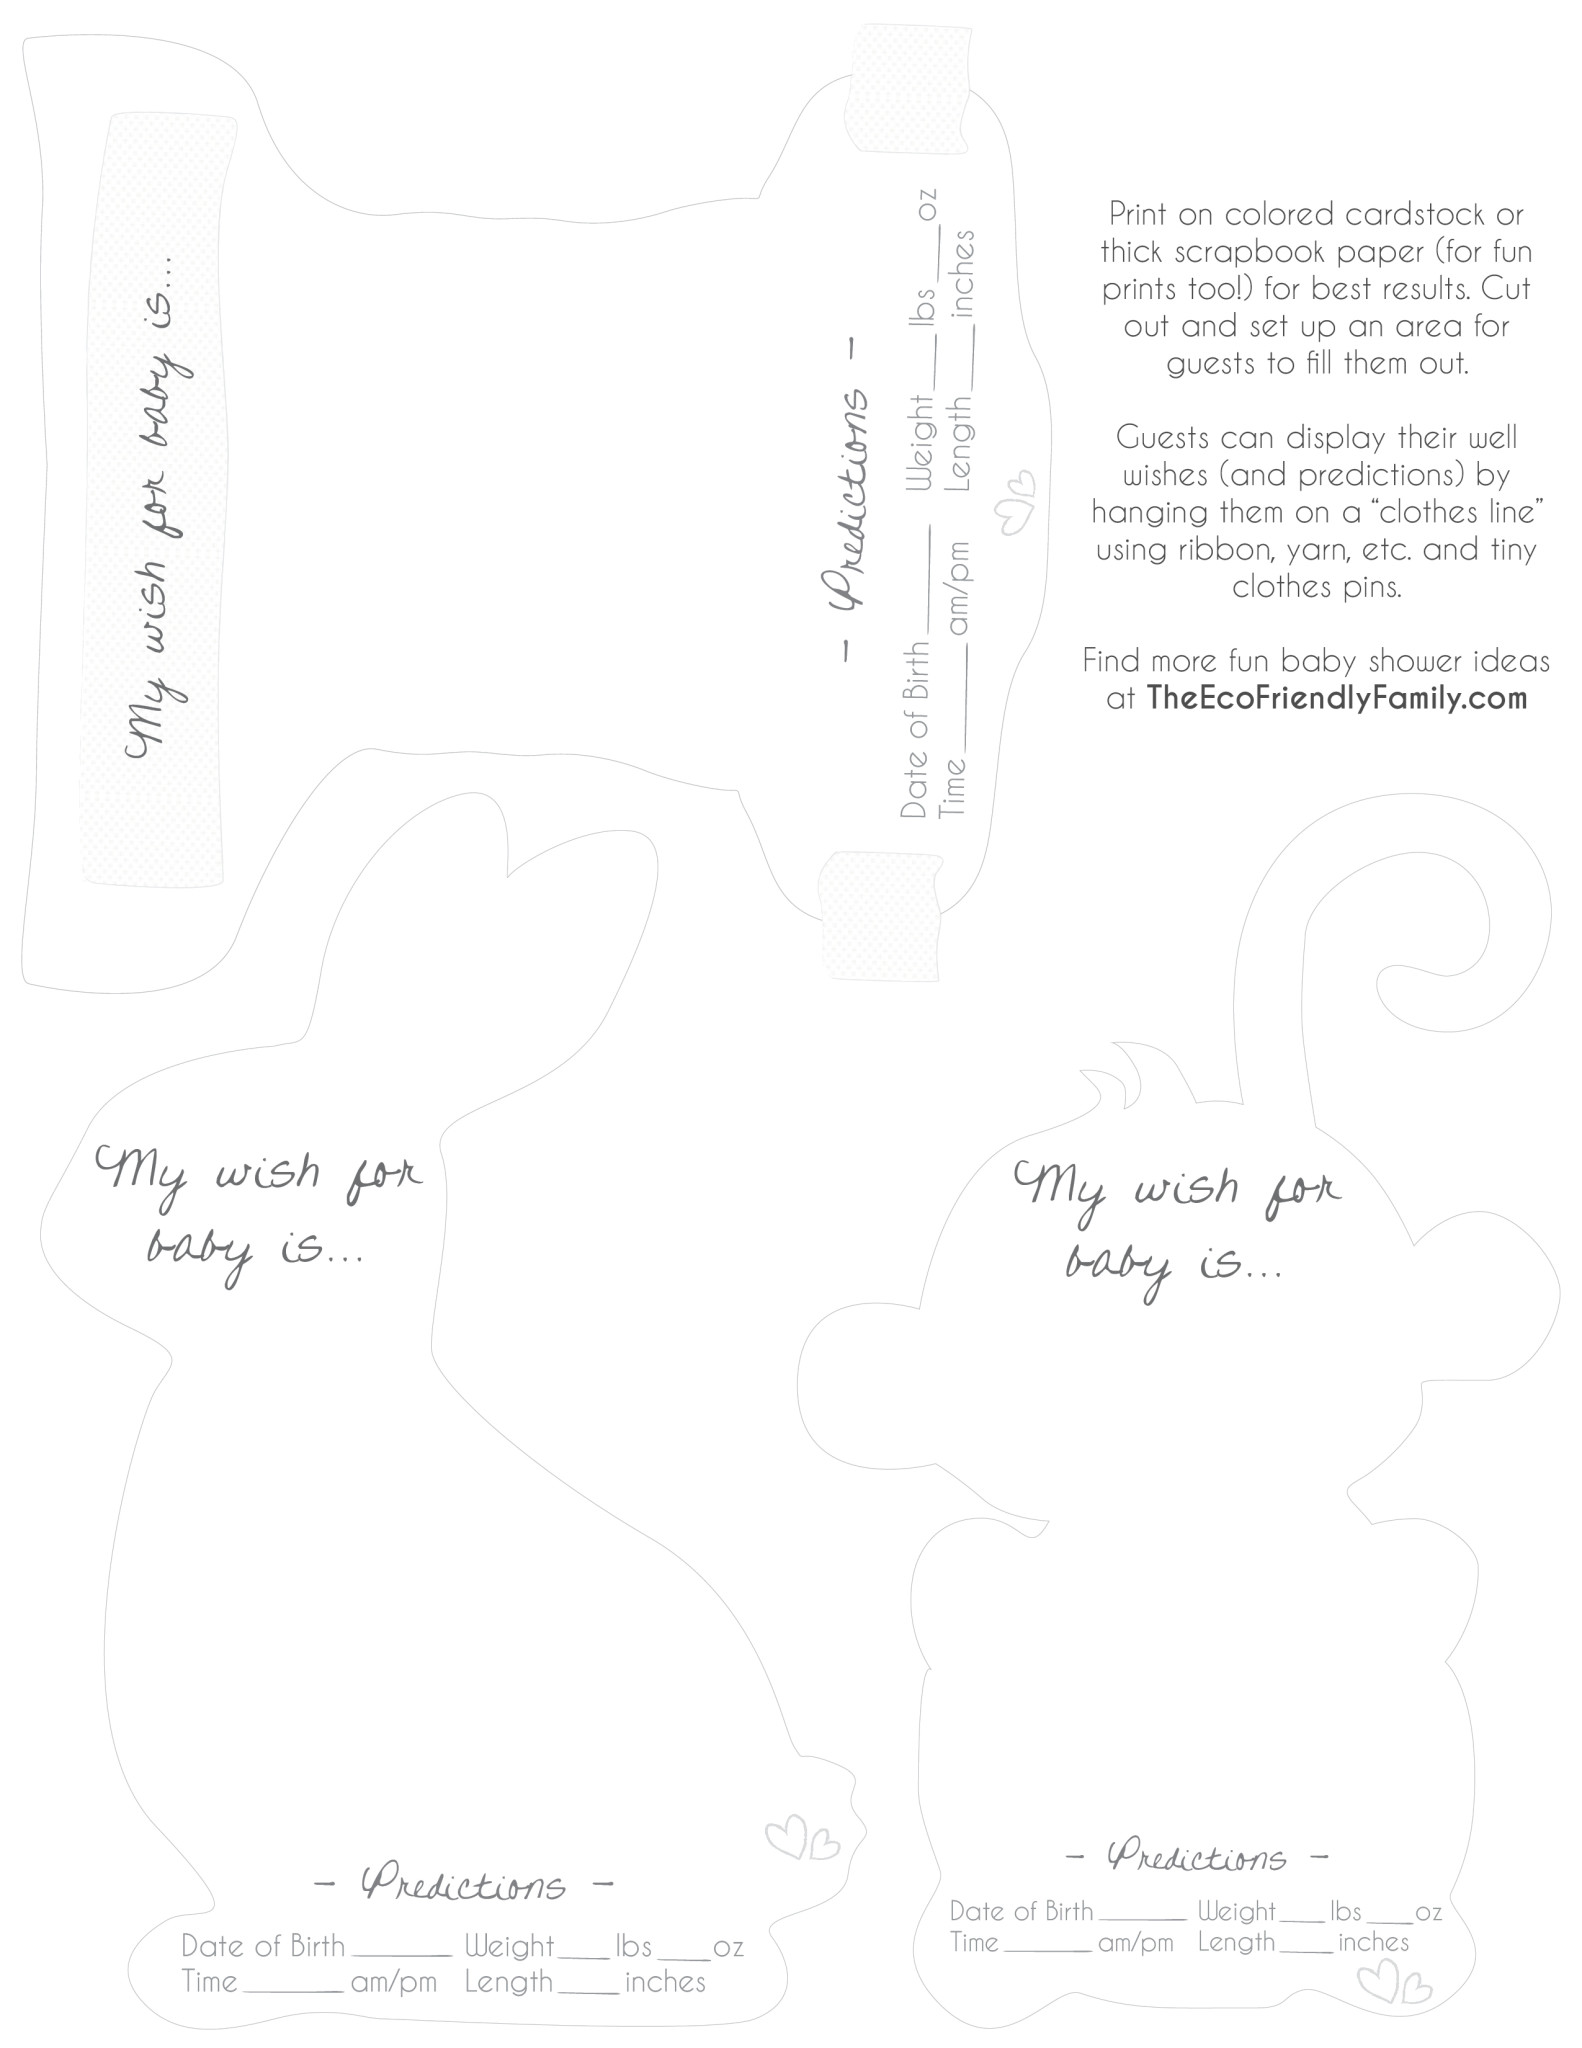 Well Wishes Amp Predictions For Baby Free Printable